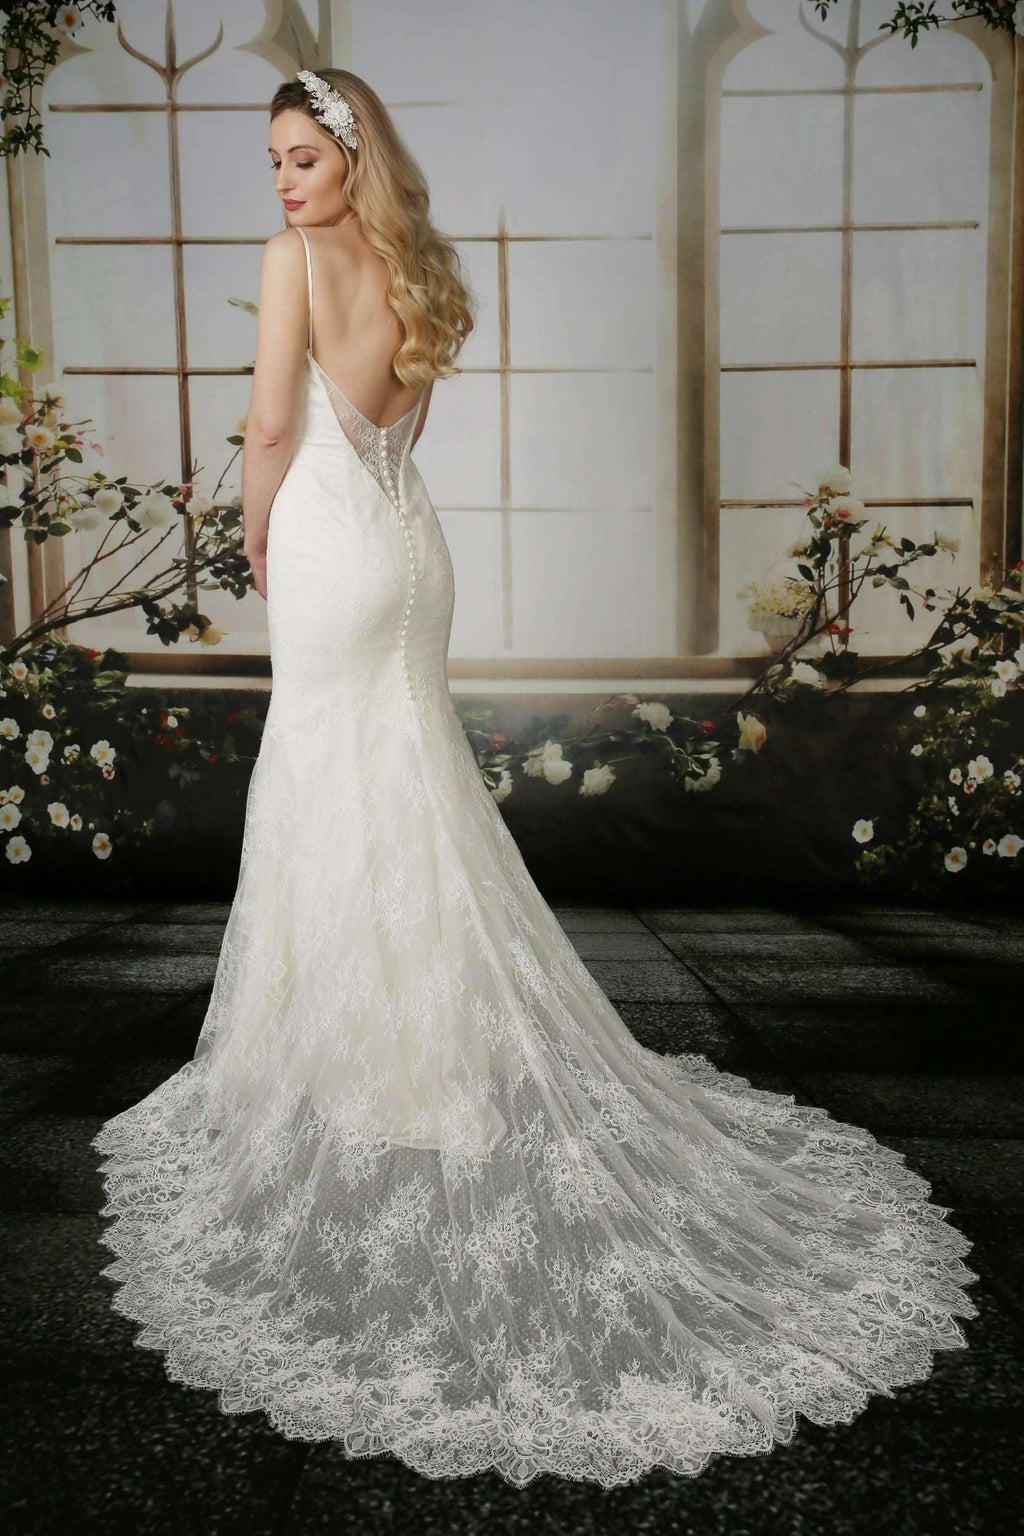 NIEVE COUTURE - Sonya - Adore Bridal and Occasion Wear